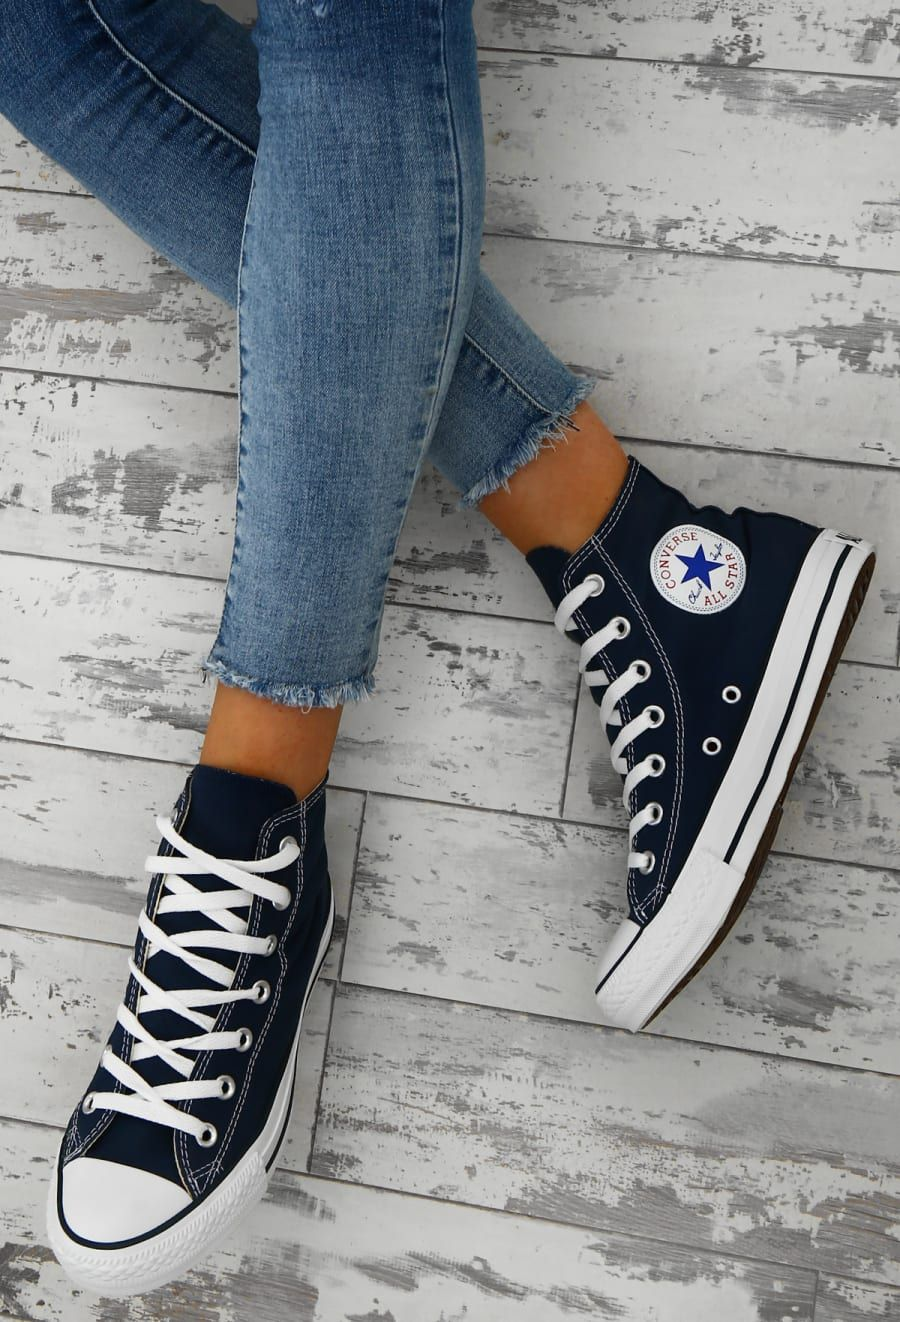 c8d5658cd2 Chuck Taylor Converse All Star Navy High Top Trainers Converse Shoes High  Top